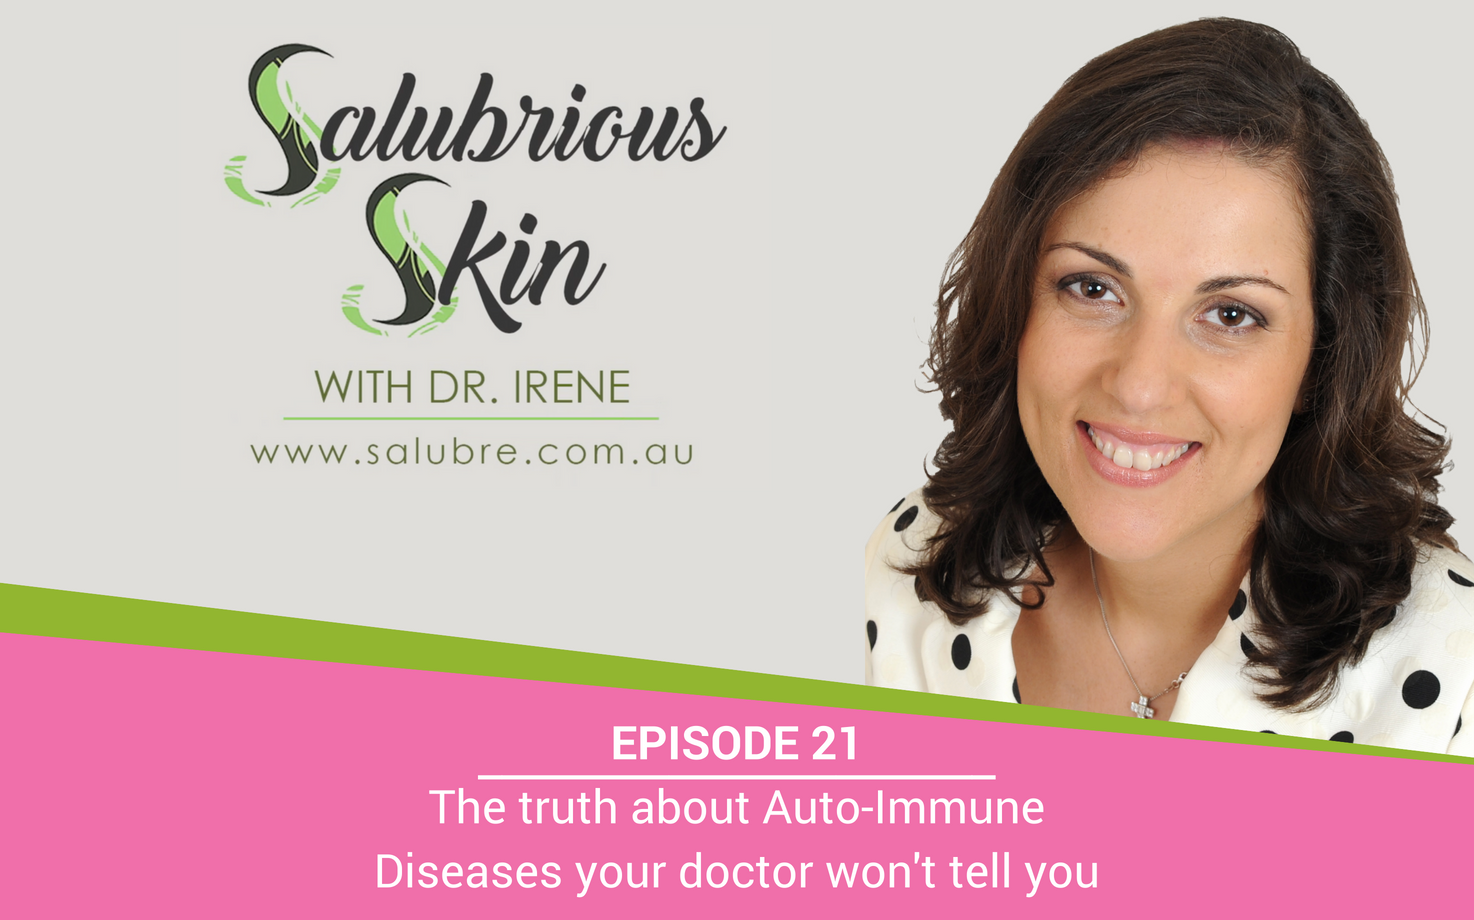 Episode 21: The Truth About Auto-Immune Diseases No Doctor Will Tell You